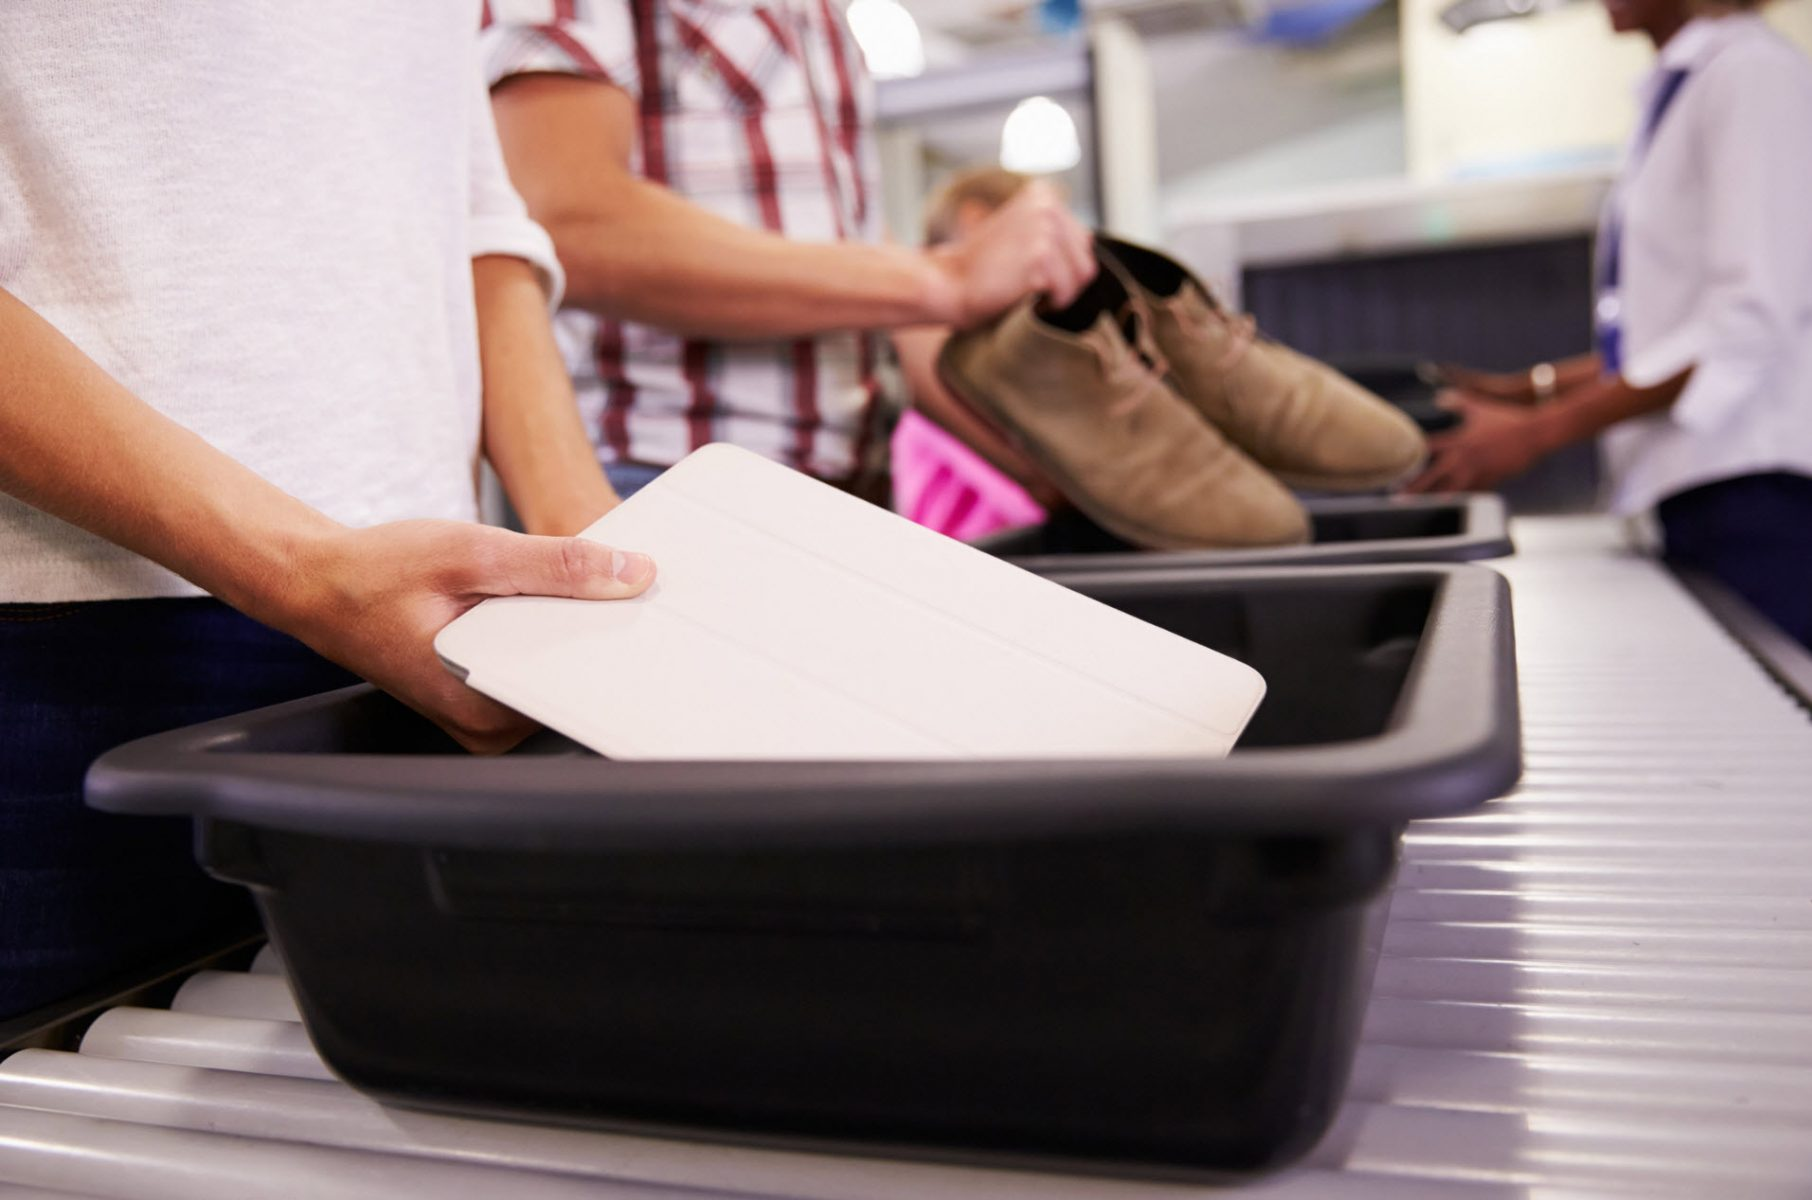 Reduce Your Chances of Contracting Pinkeye With TSA PreCheck